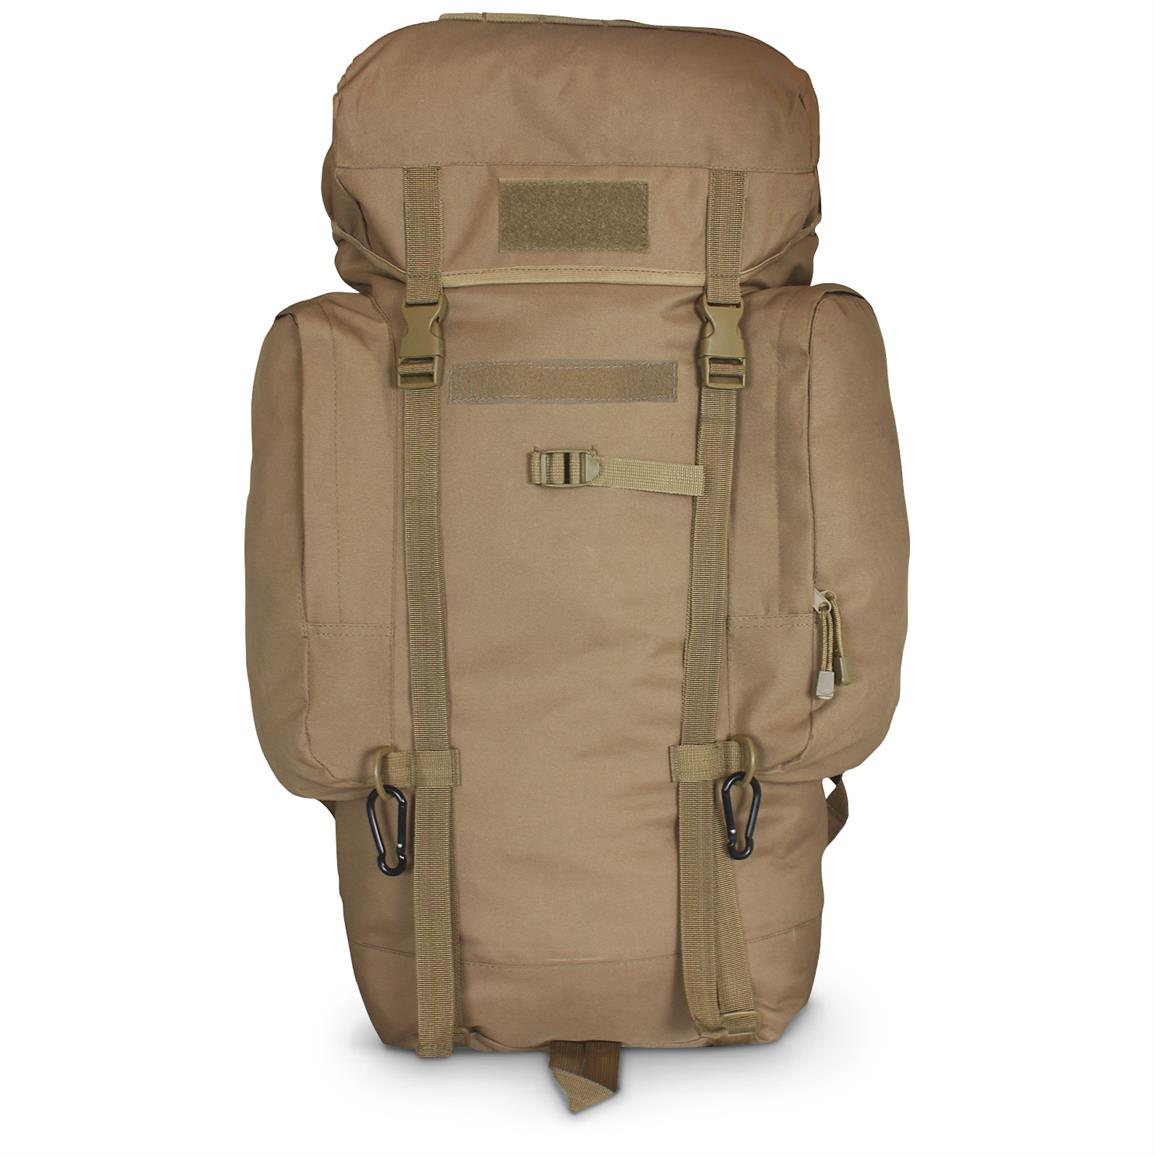 Fox Tactical Rio Grande Pack, 45 liters, Coyote Tan